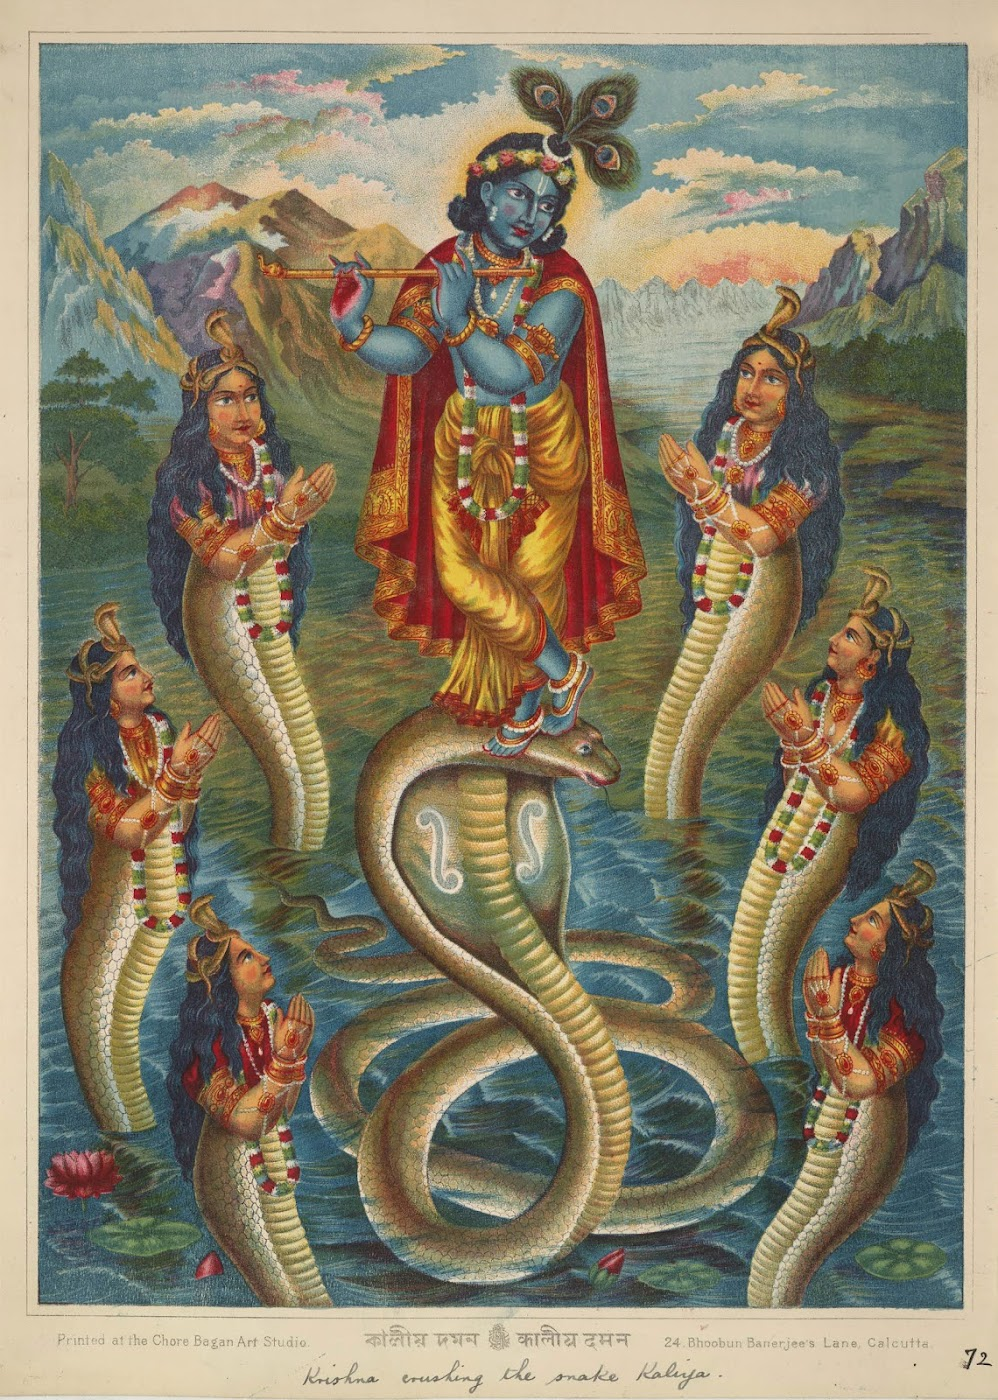 Krishna Dancing on Snake Demon Kaliya and Surrounded by the Naginis in River Jumna - Lithograph Print, Chore Bagan Art Studio, Calcutta (Kolkata) Circa 1895